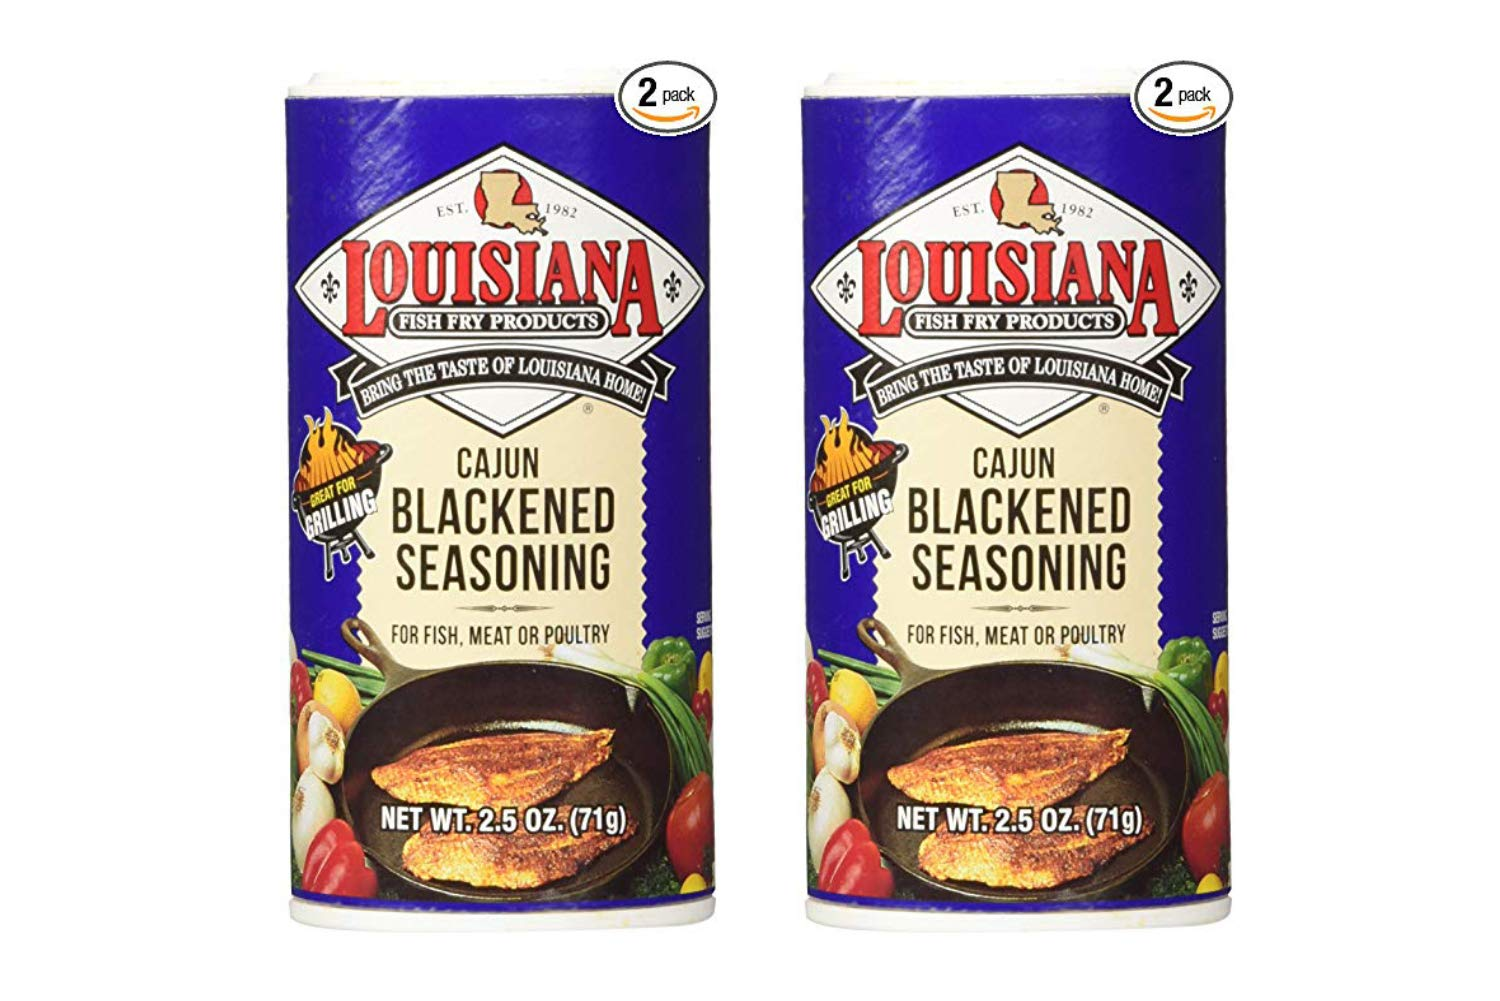 Louisiana Cajun Blackened Seasoning (71 Grams Shakers) 2 Count (2 Pack)